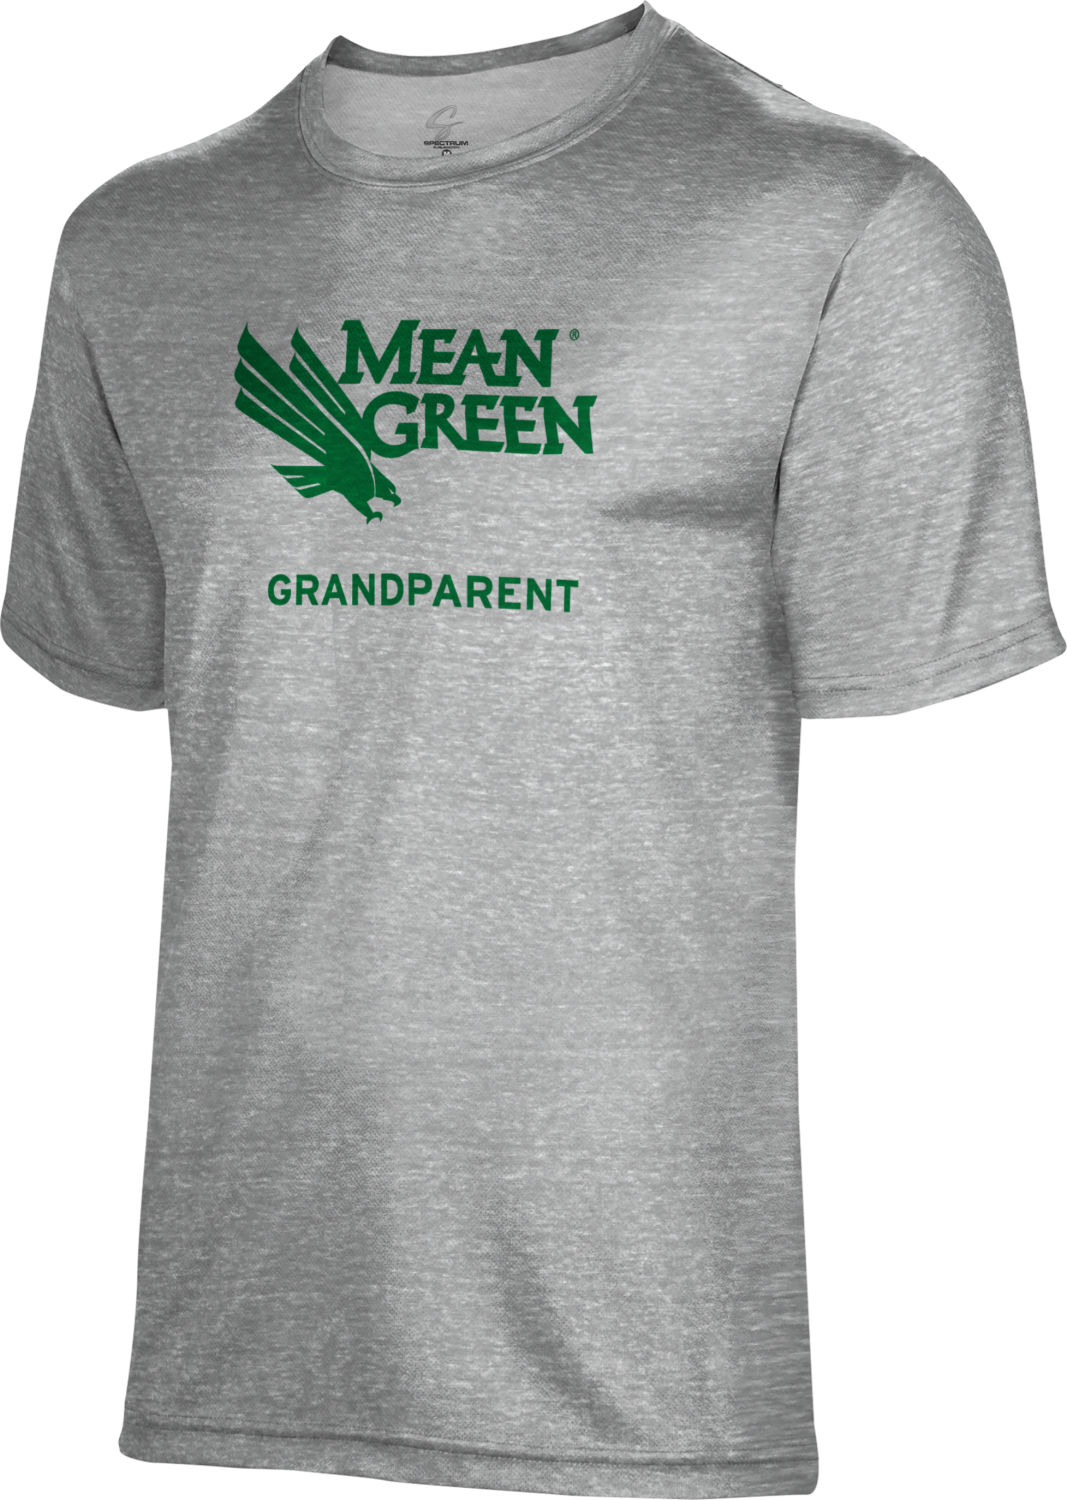 Spectrum Grandparent Unisex 50/50 Distressed Short Sleeve Tee